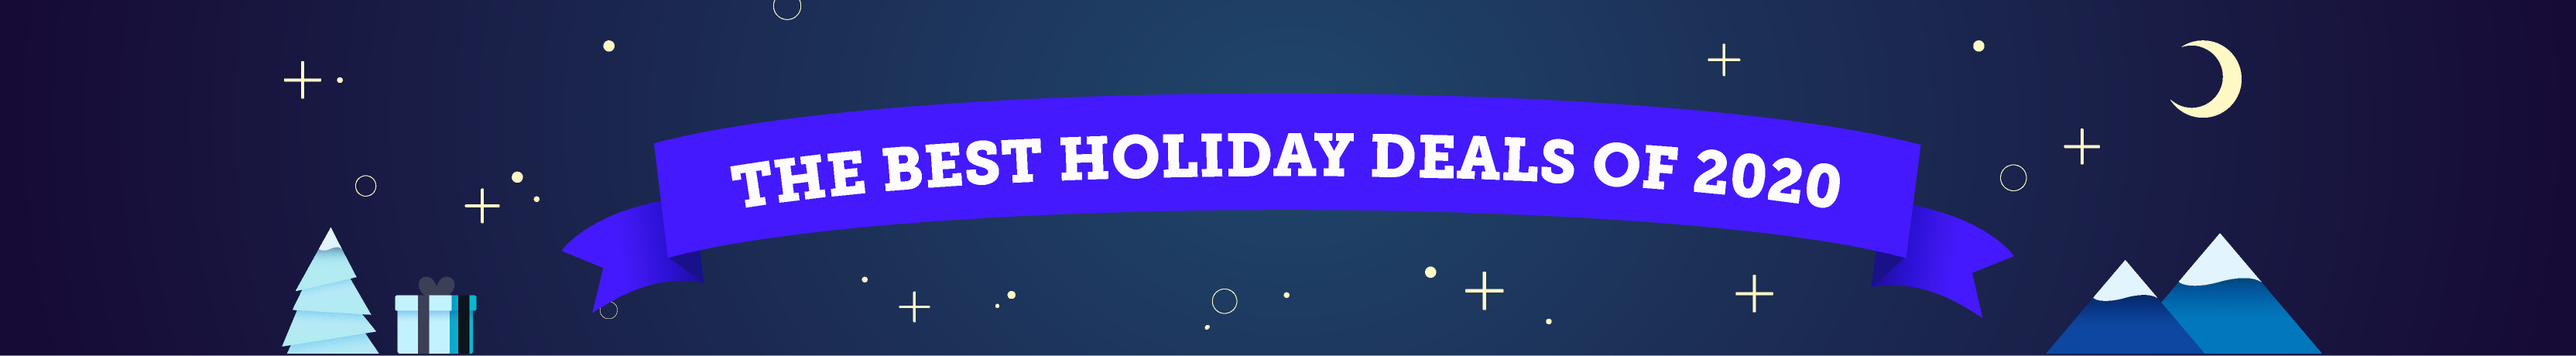 Best Holiday Deals of 2020